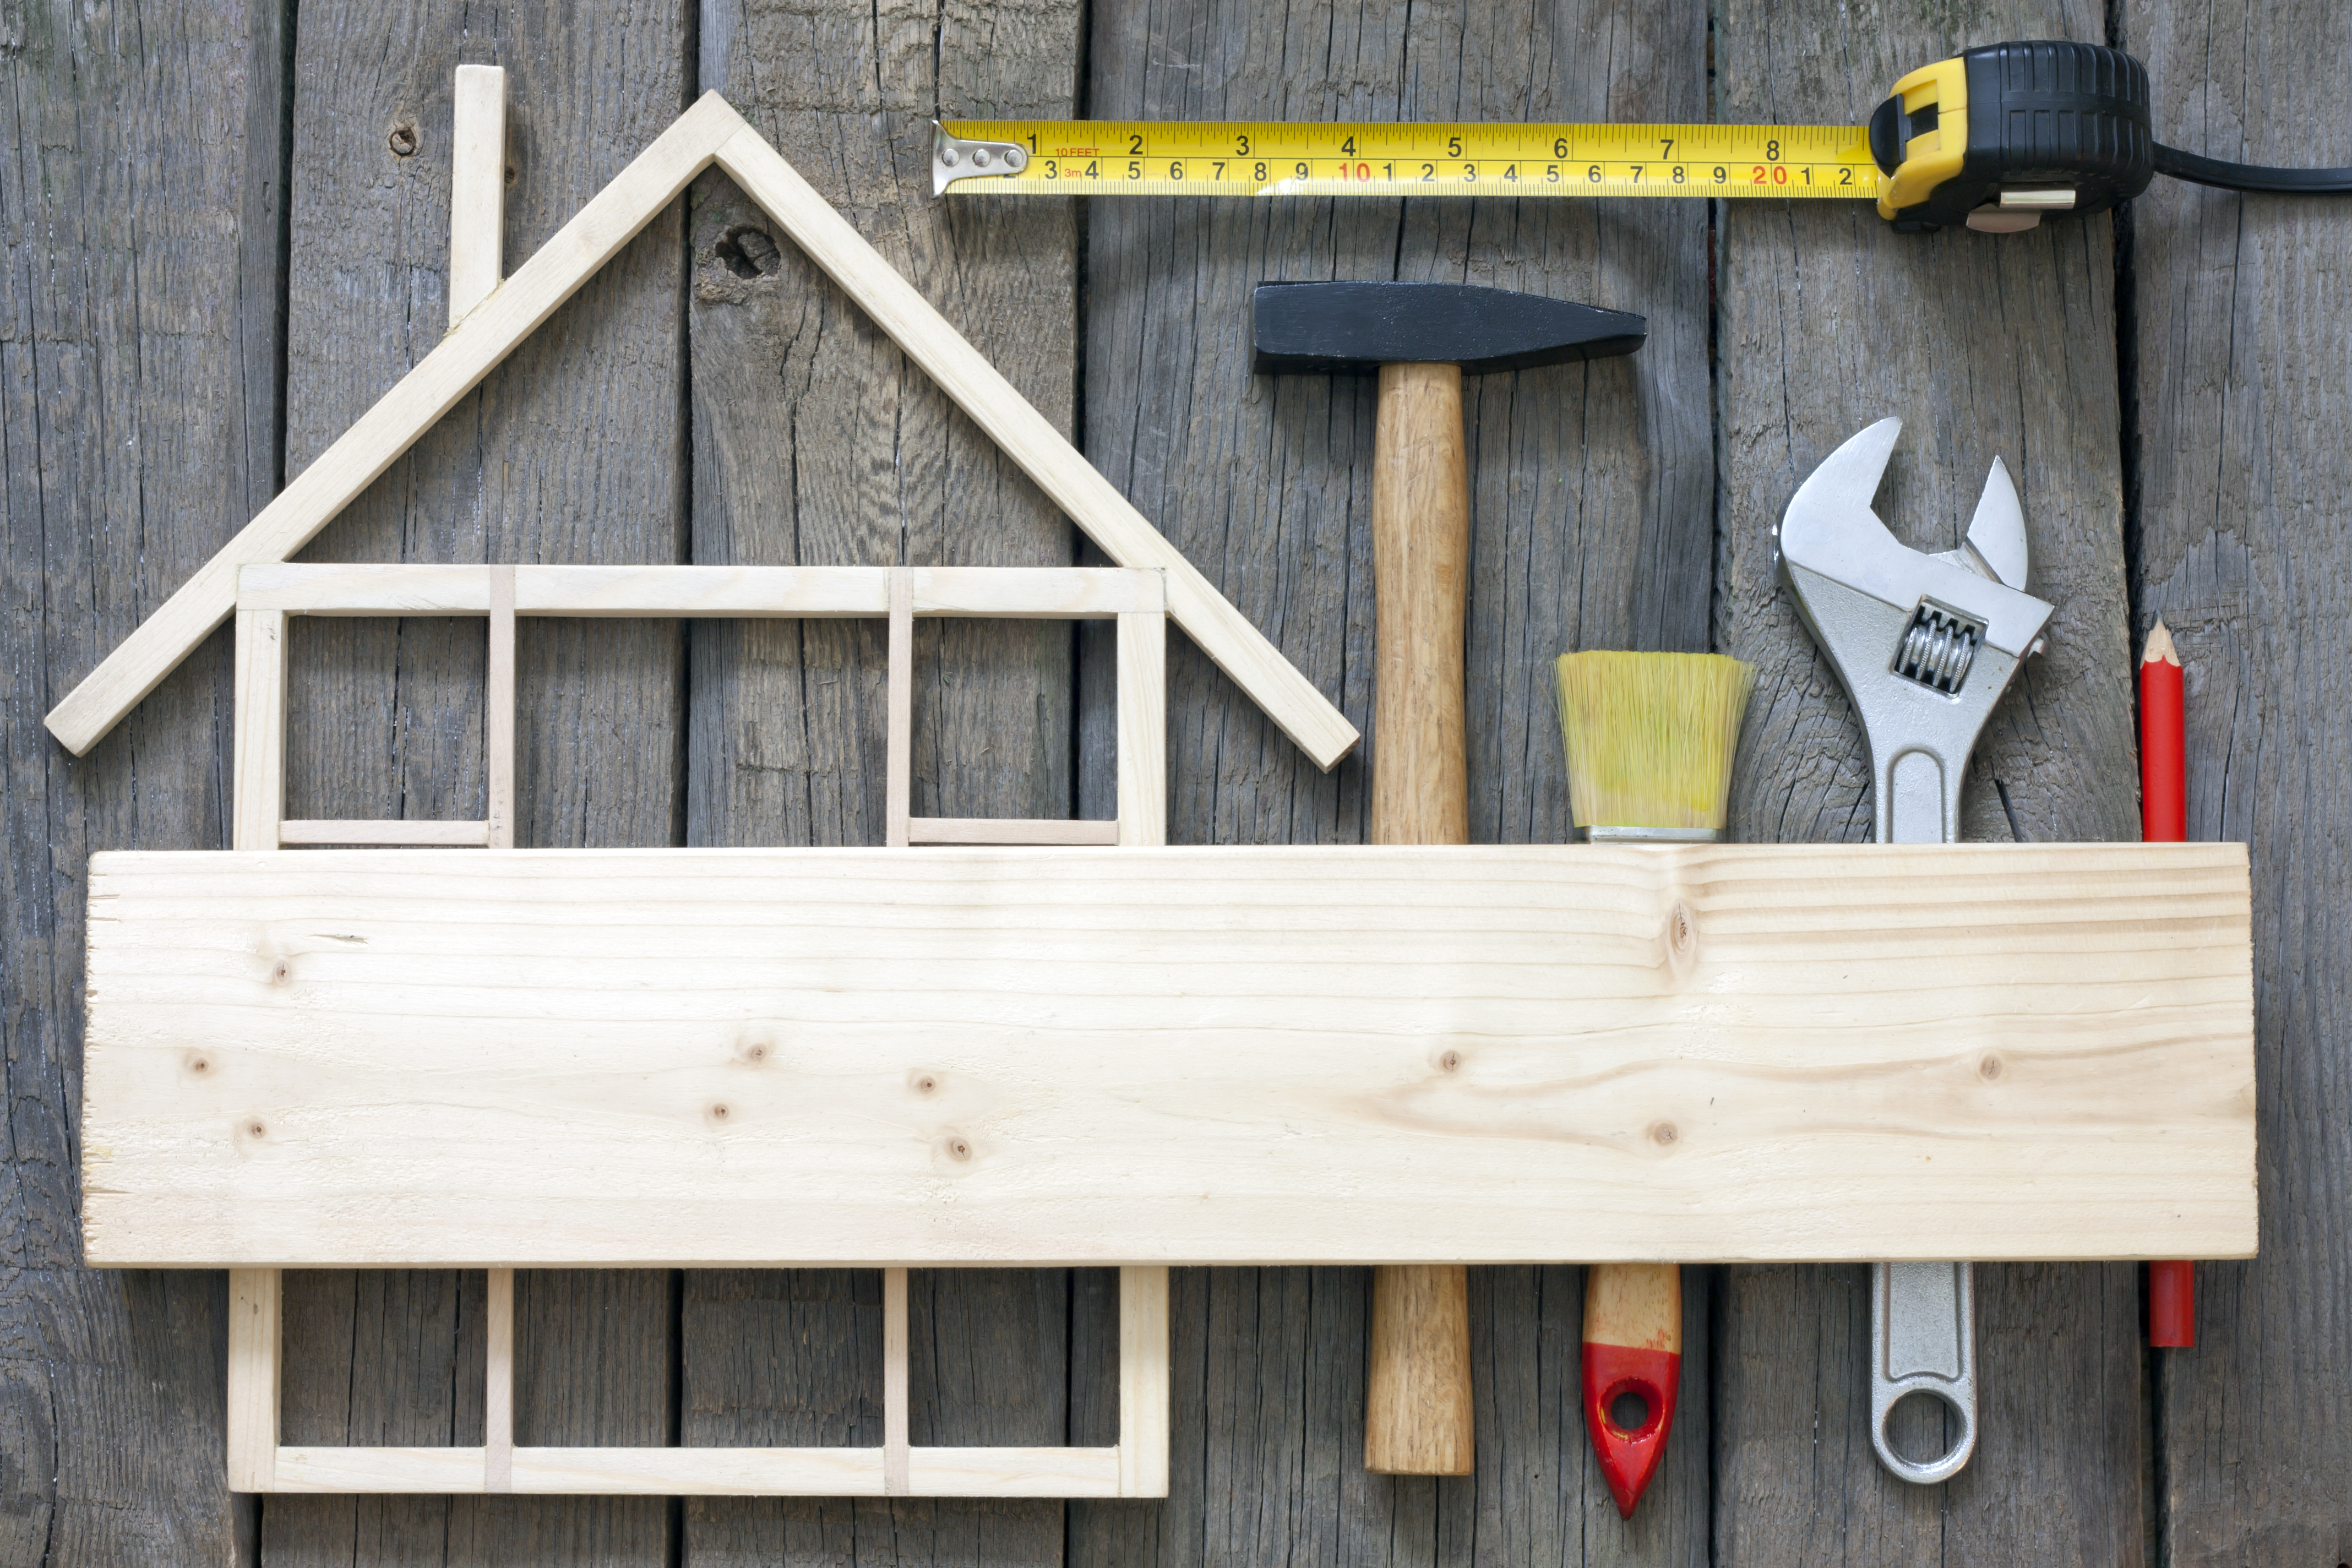 image of a wood made house frame and tool - raises the question if Renovation is the Right Property Investing Strategy For You